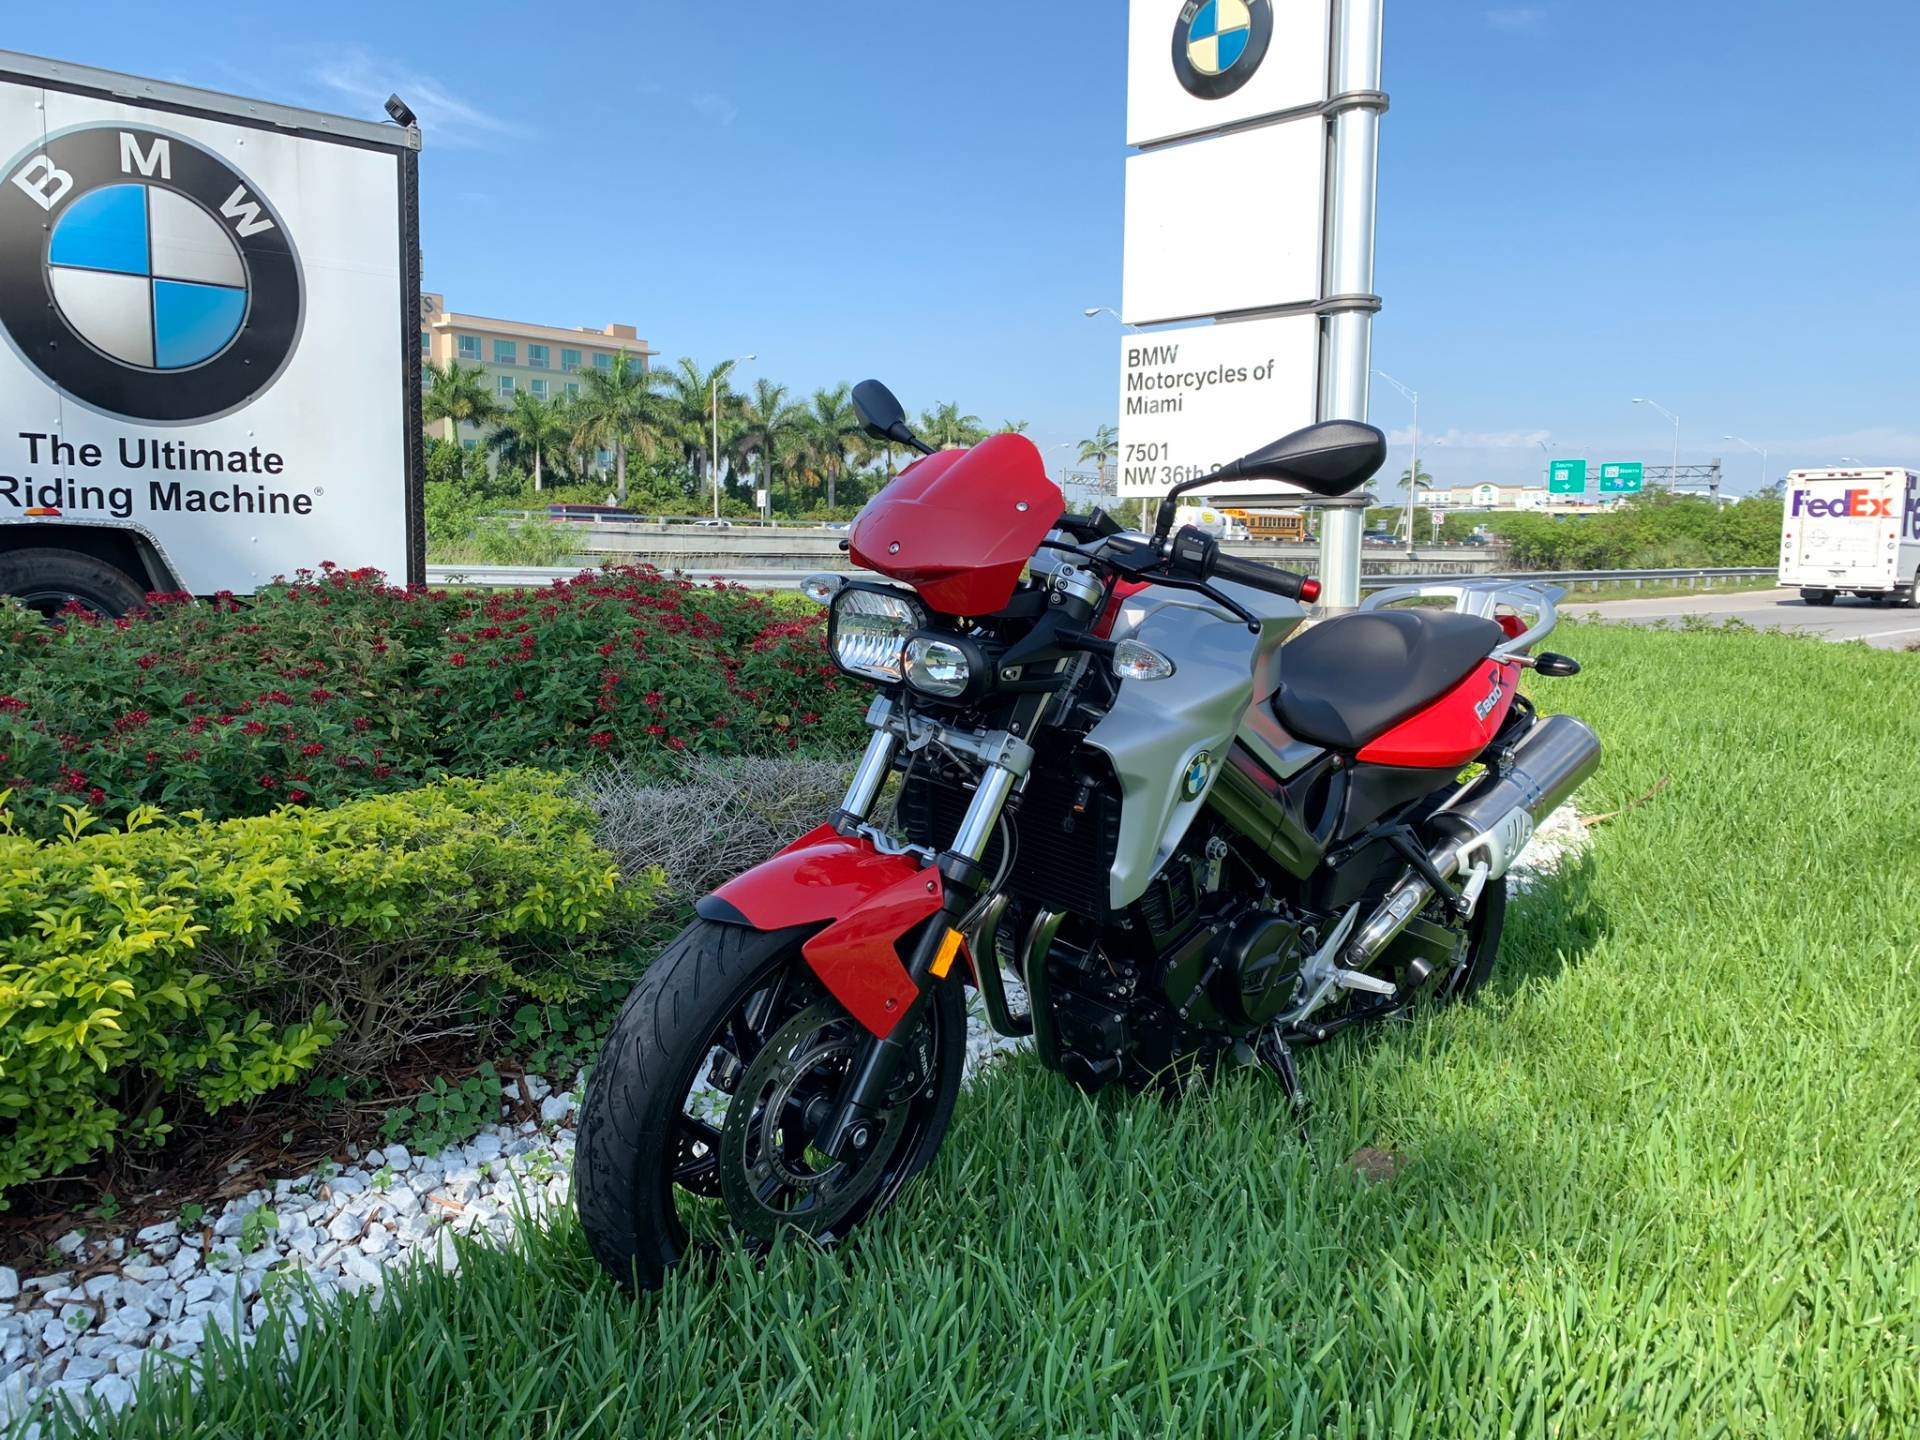 Used 2012 BMW F 800 R for sale, BMW F 800R for sale, BMW Motorcycle F800R, used BMW Roaster, Naked, 800, BMW. BMW Motorcycles of Miami, Motorcycles of Miami, Motorcycles Miami, New Motorcycles, Used Motorcycles, pre-owned. #BMWMotorcyclesOfMiami #MotorcyclesOfMiami. - Photo 4